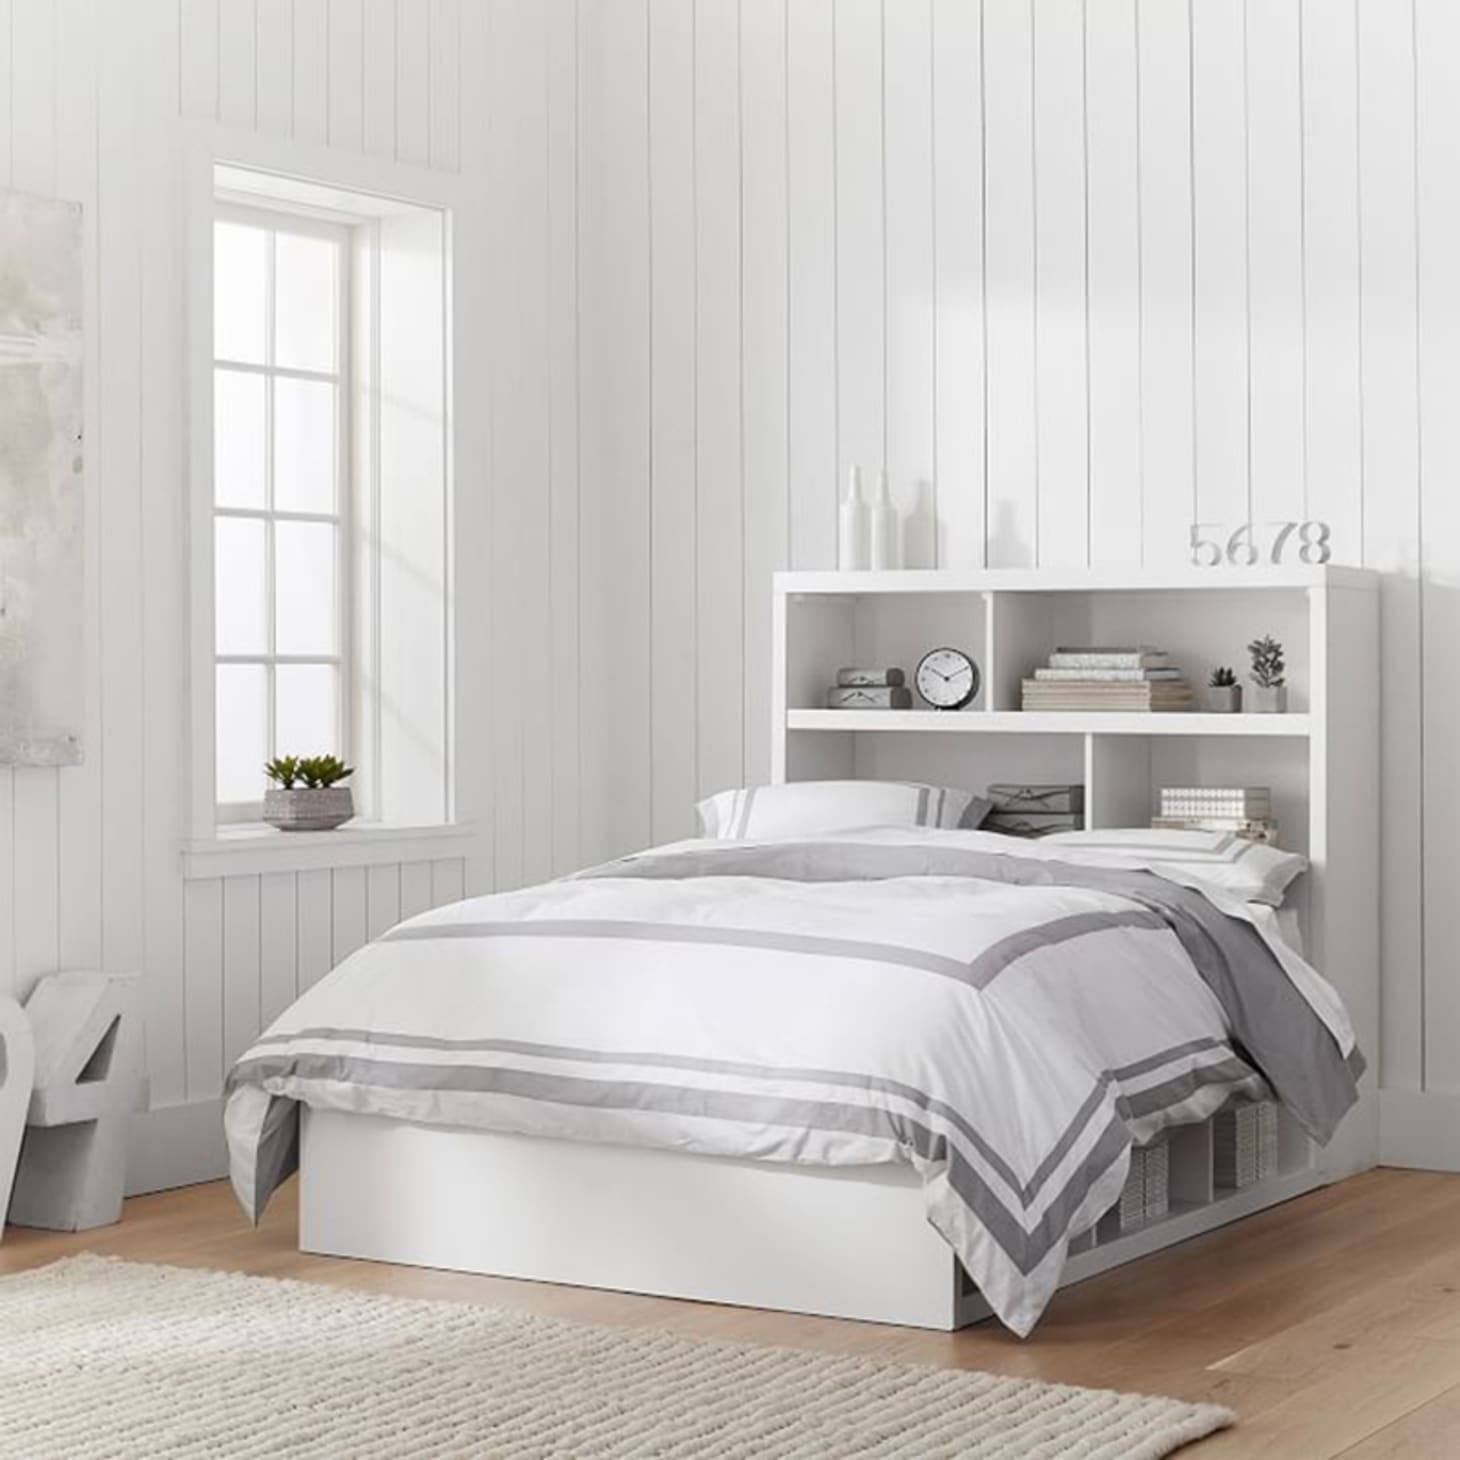 Bookcase Headboard Storage Ideas By Budget Apartment Therapy